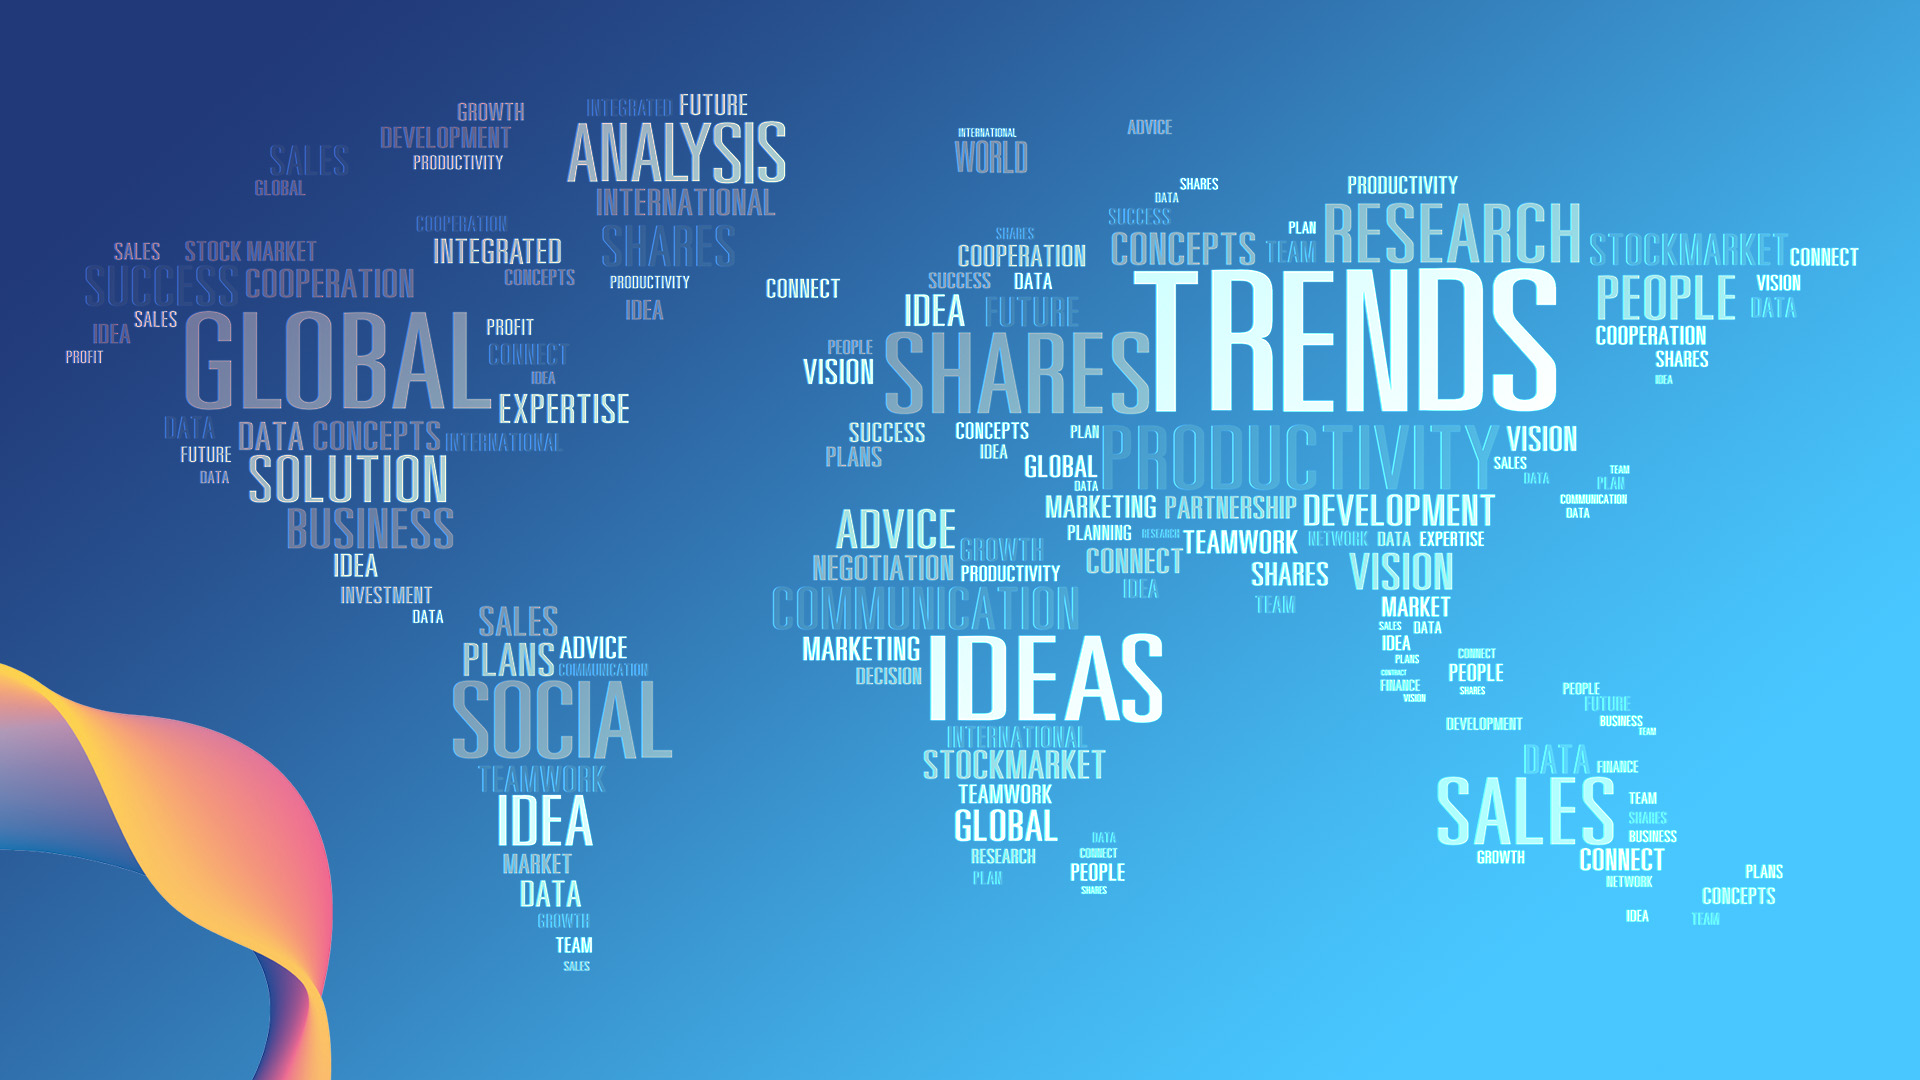 Word cloud in the shape of a world map highlighting words around trend research